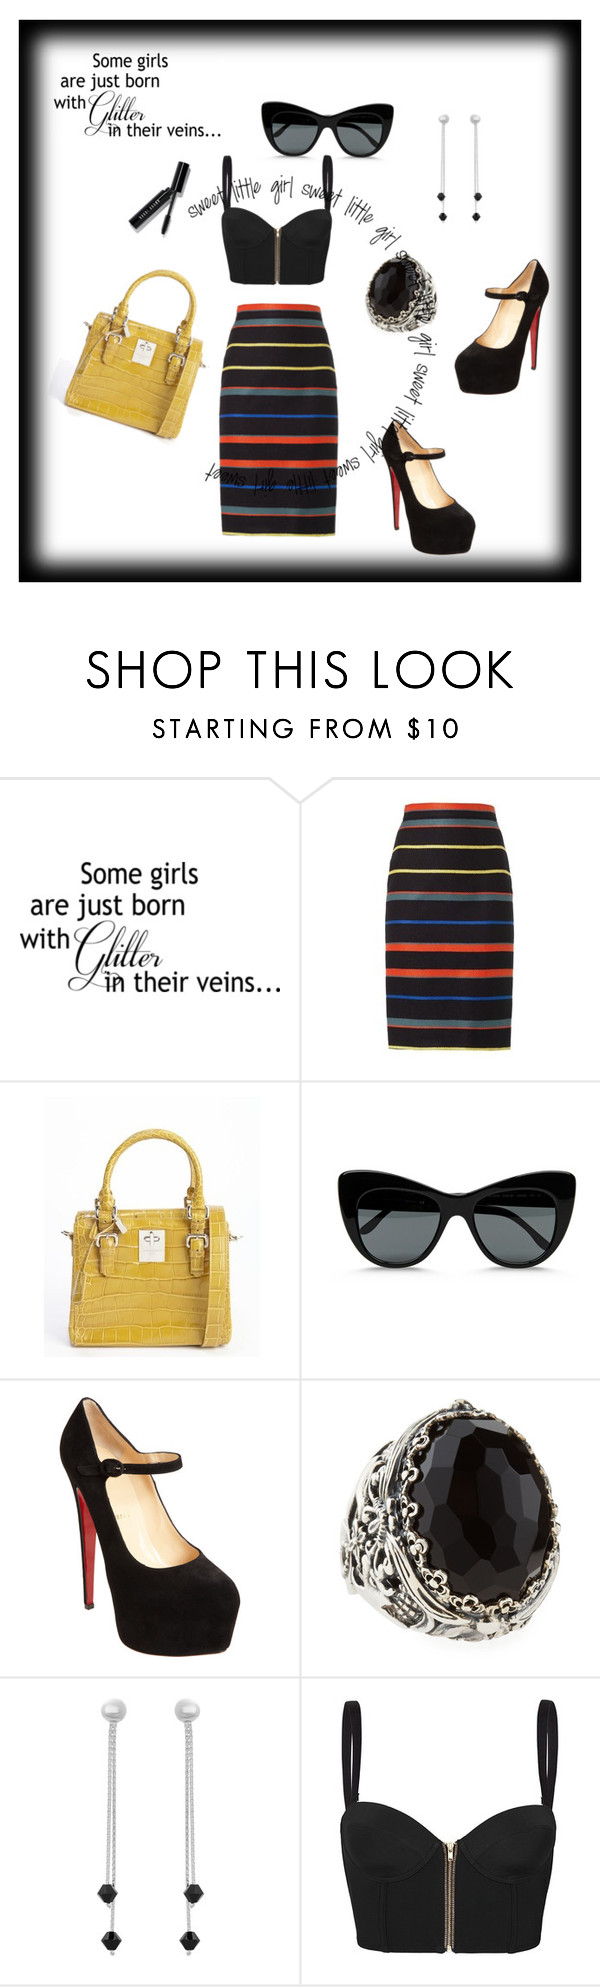 3. Some Girls Are Just... by kohlanndesigns on Polyvore featuring sass & bide, Givenchy, Christian Louboutin, Giorgio Armani, Konstantino, Sterling Essentials, STELLA McCARTNEY, Bobbi Brown Cosmetics, polyvorecommunity and outfitswithatwist